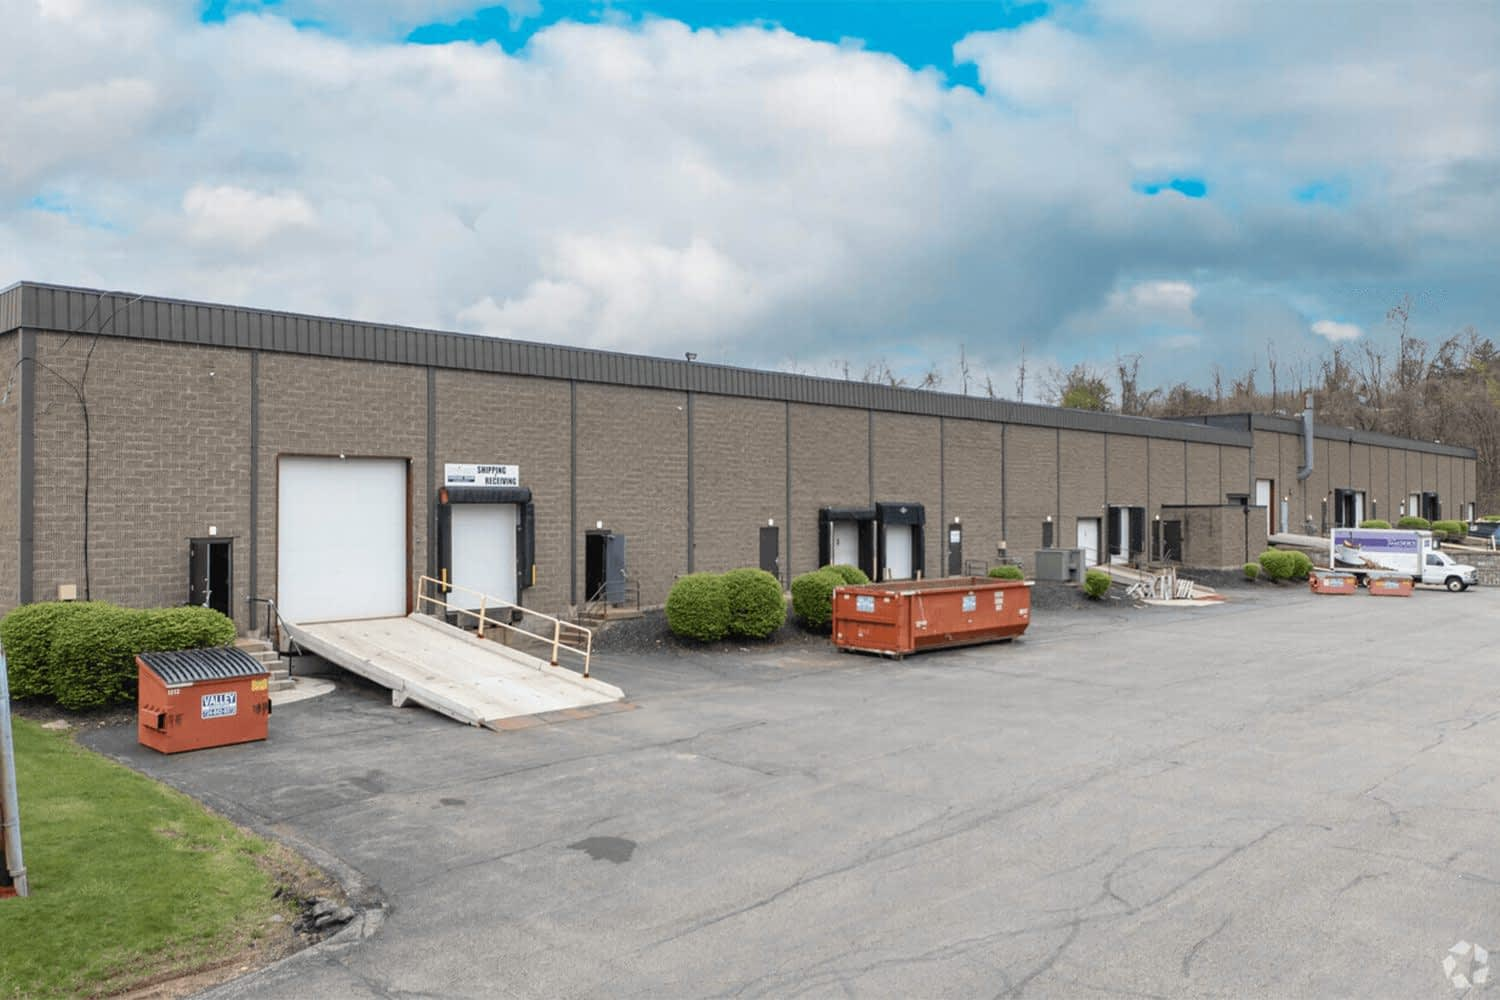 exterior of the back of building with a large dumpster and garage doors